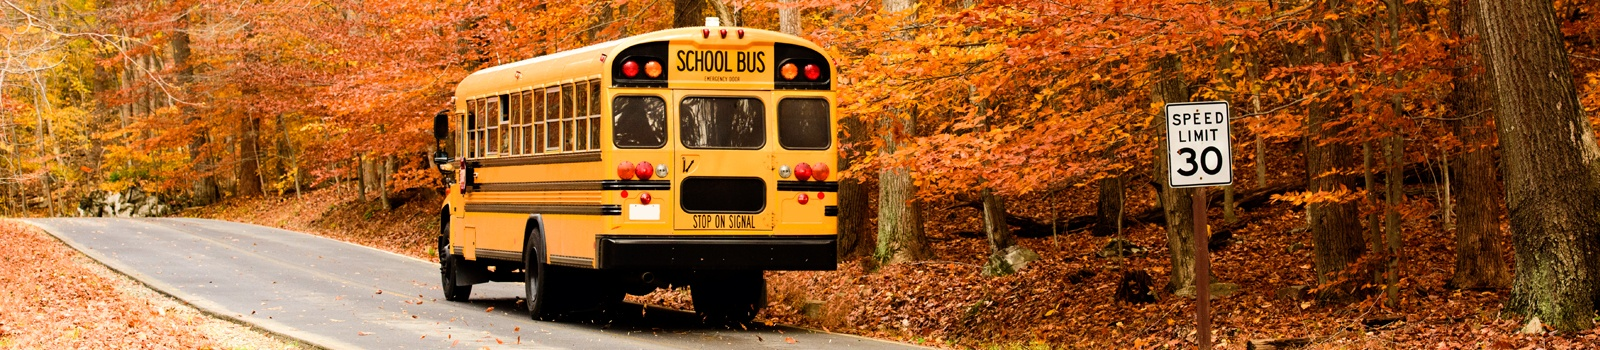 School Bus Financing